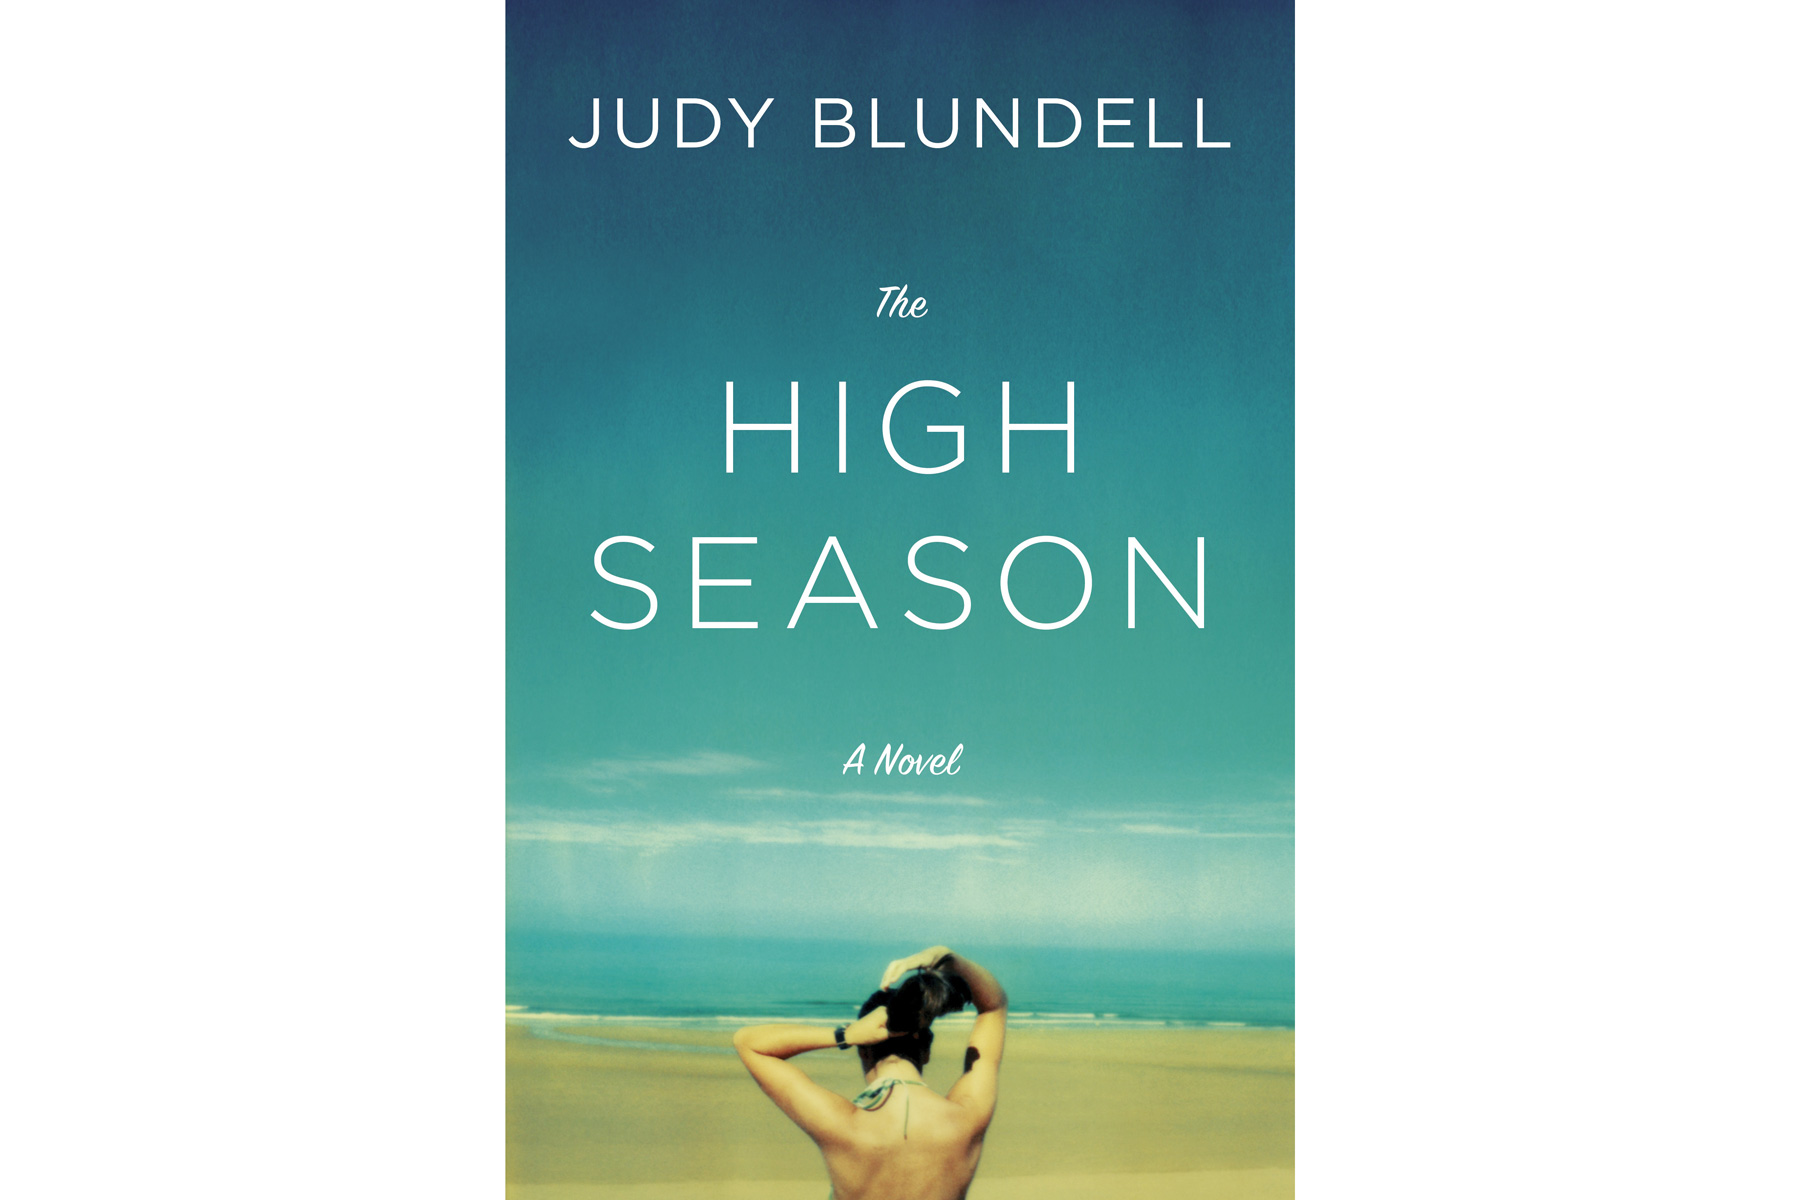 The High Season, by Judy Blundell